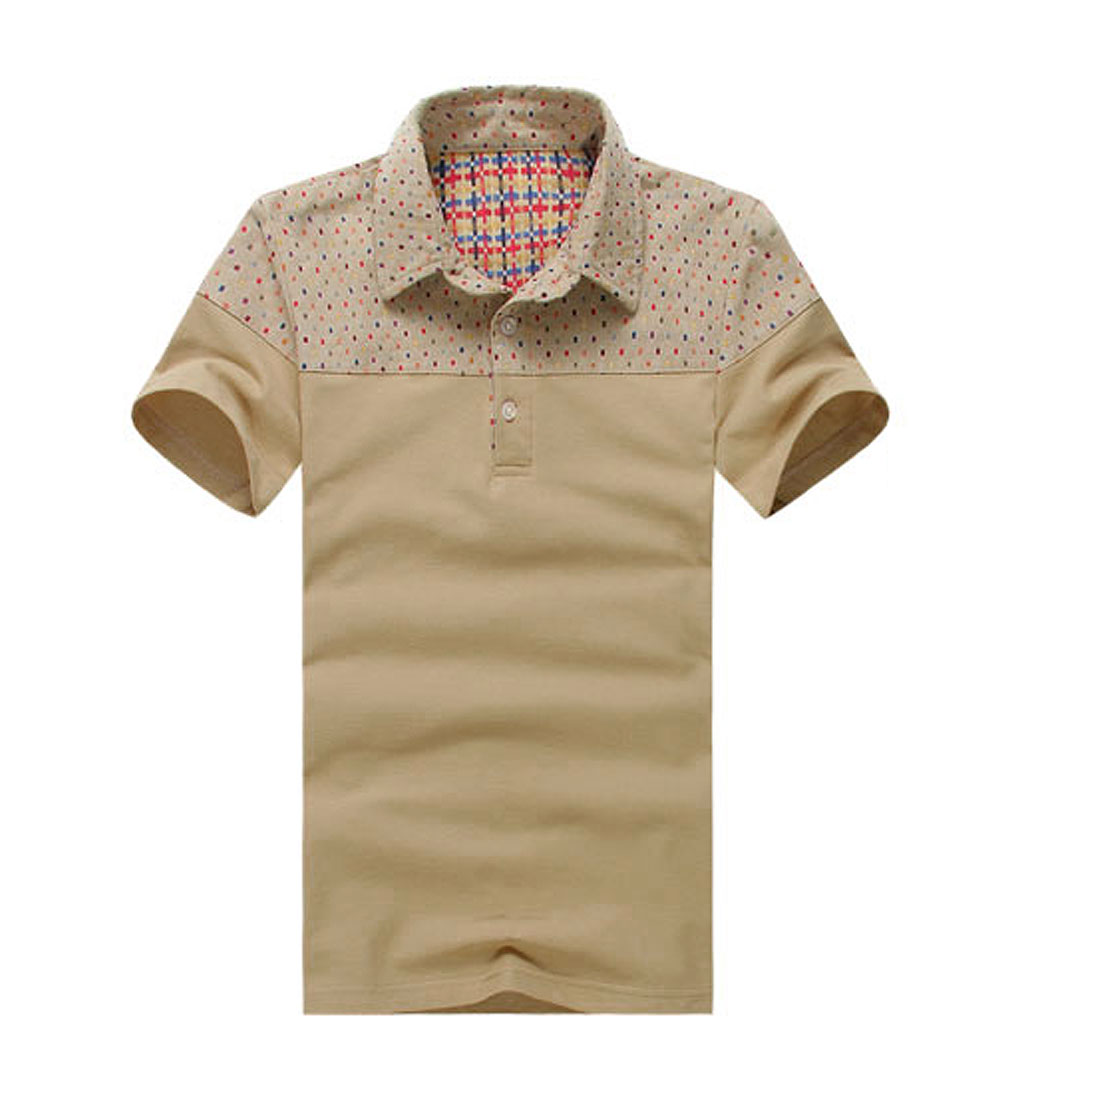 Men Khaki Point Collar Geometric Pattern Short Sleeve Polo Shirt M